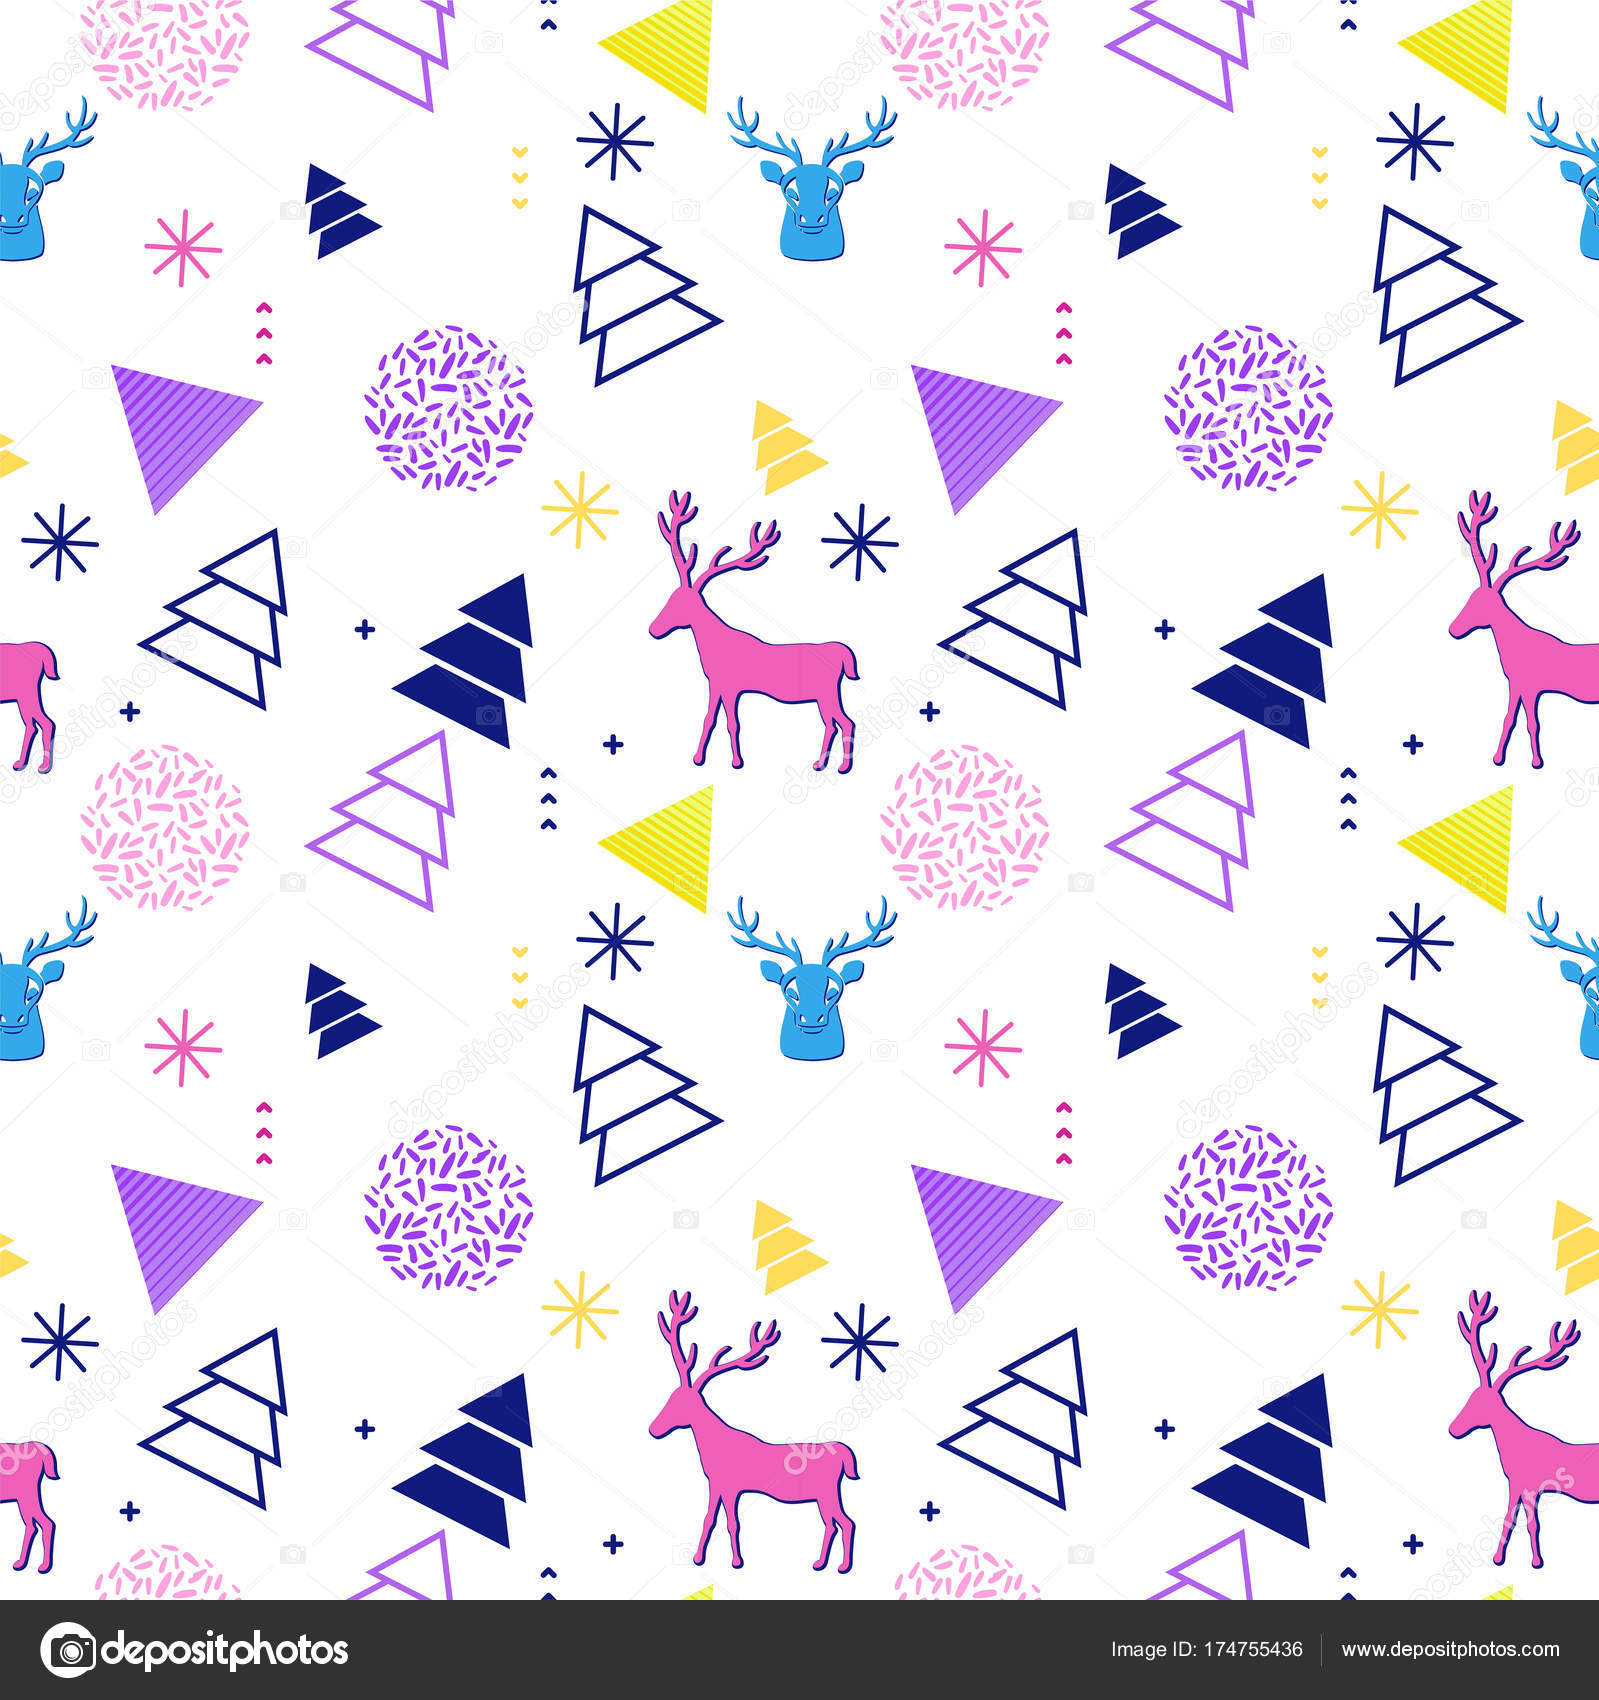 90s Christmas Background.Merry Christmas Geometric Seamless Pattern In Trendy 90s Style With